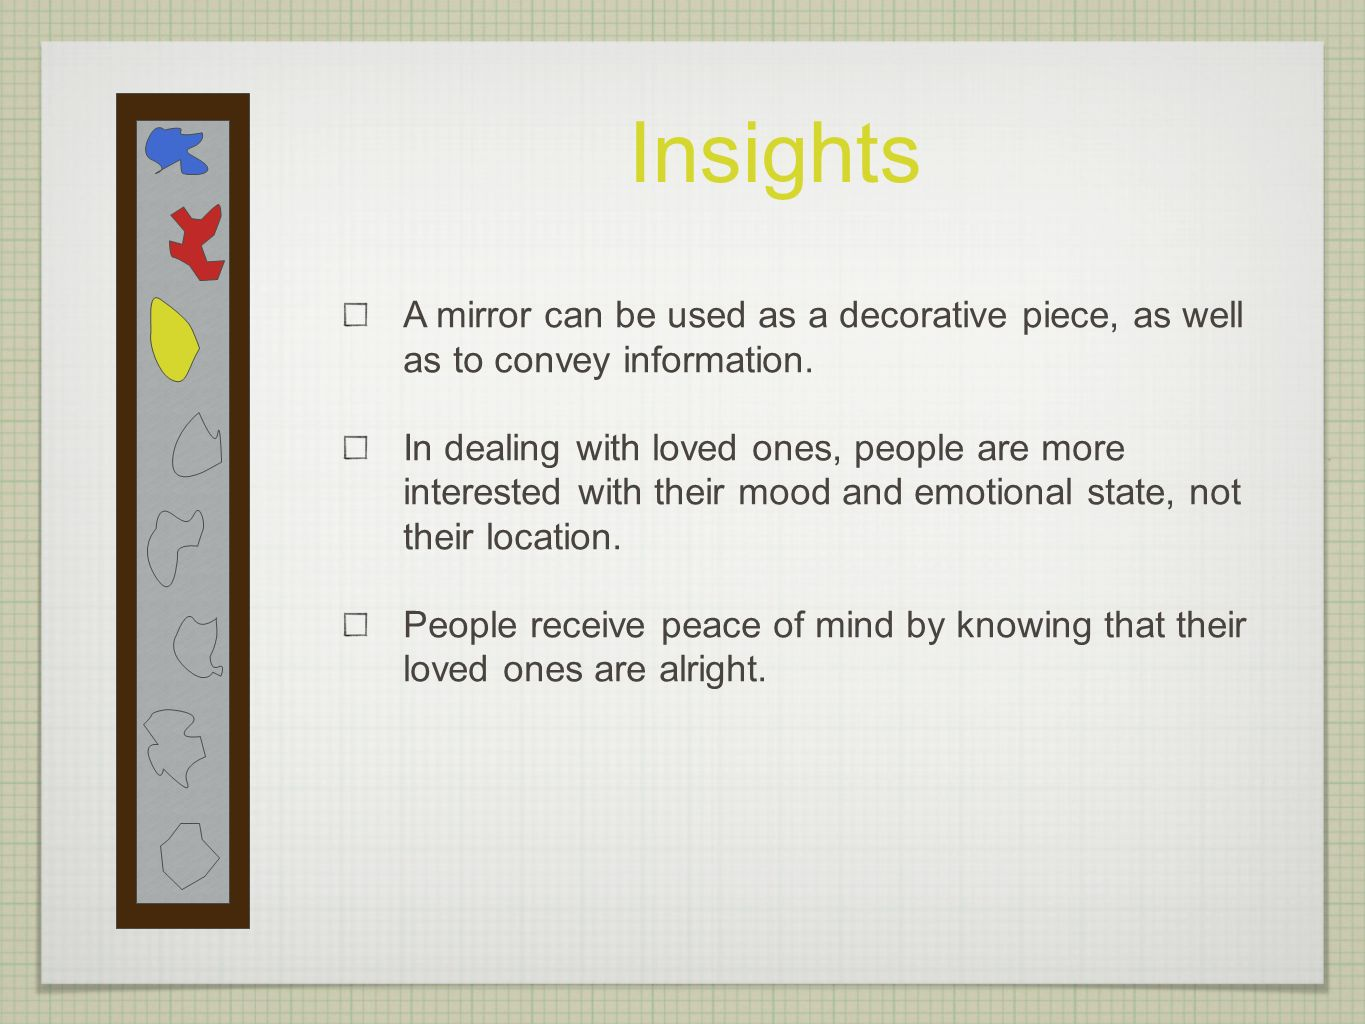 Insights A mirror can be used as a decorative piece, as well as to convey information.